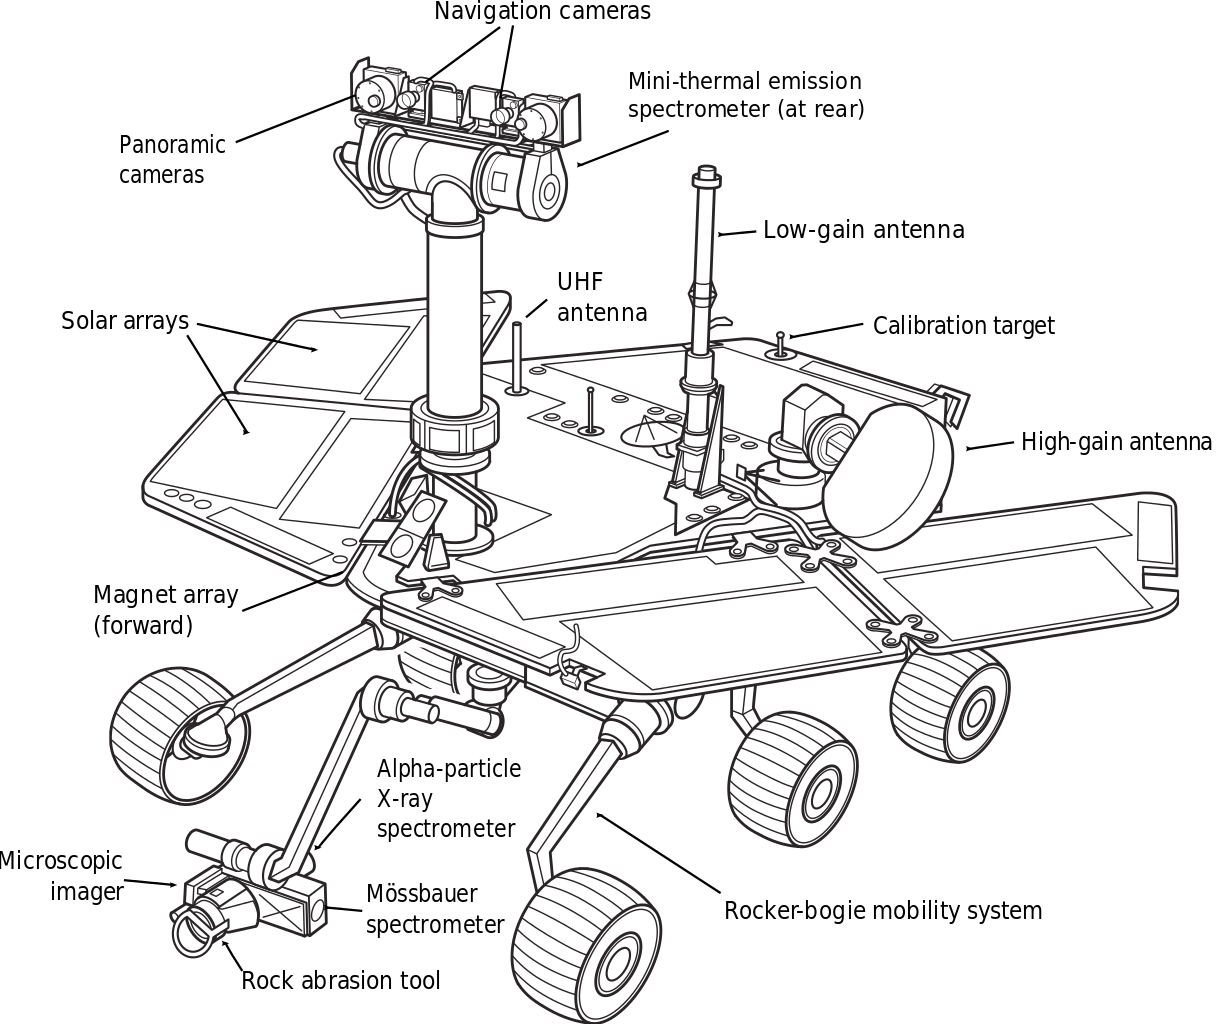 Mars exploration rover diagram